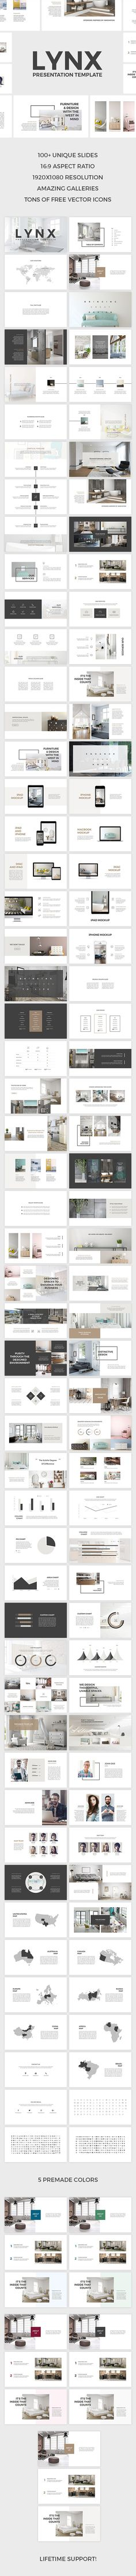 Lynx PowerPoint Template (PowerPoint Templates)